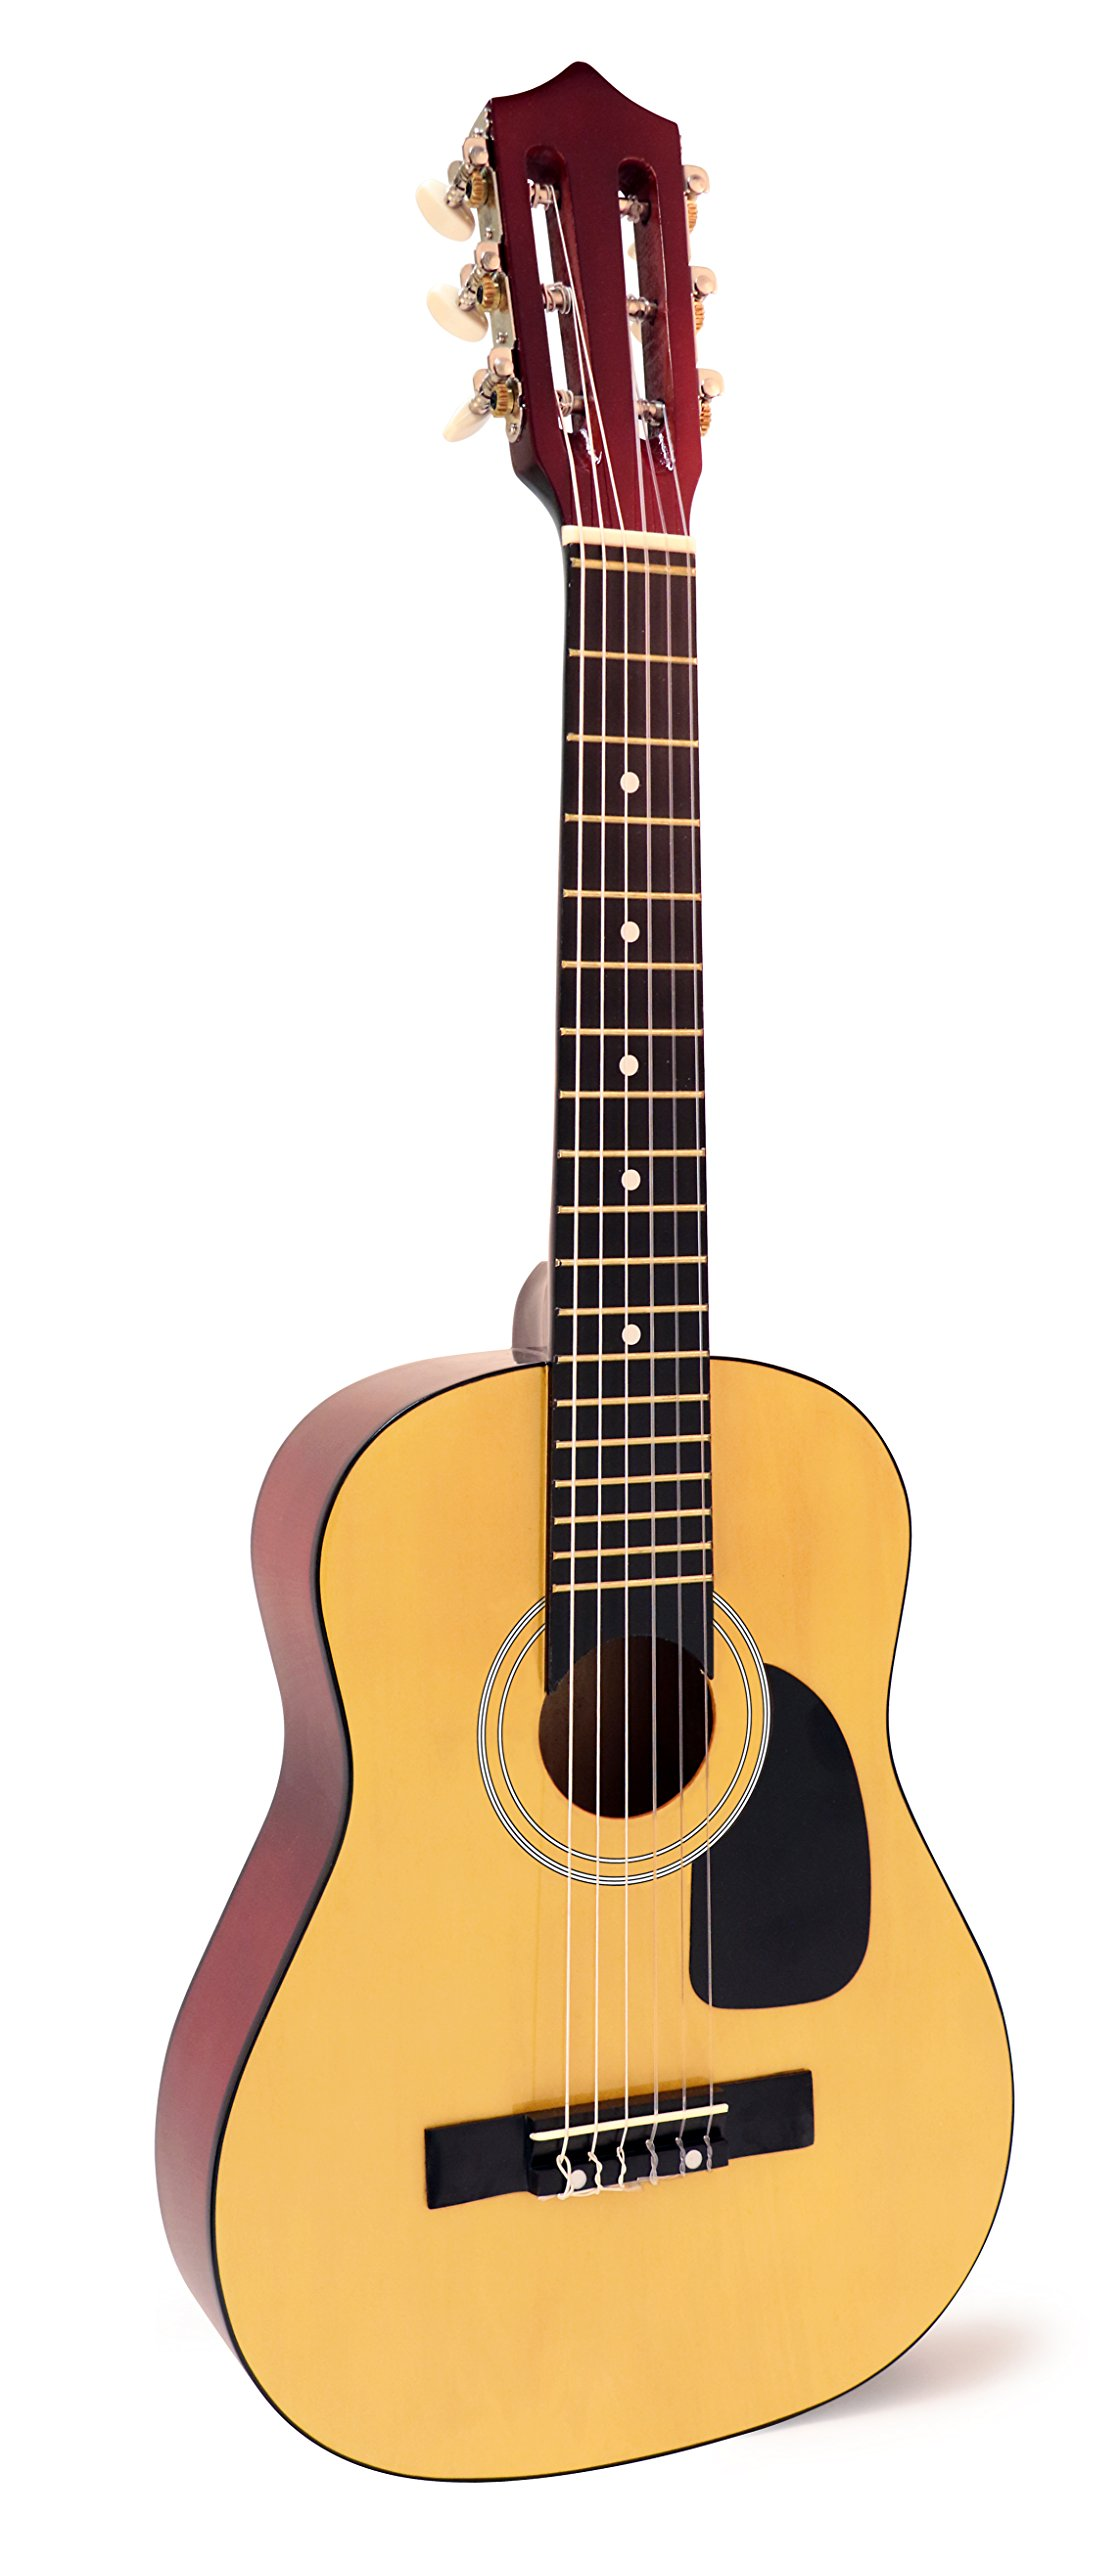 Hohner HAG250P 1/2 Sized Classical Guitar - For Toddlers by Hohner Accordions